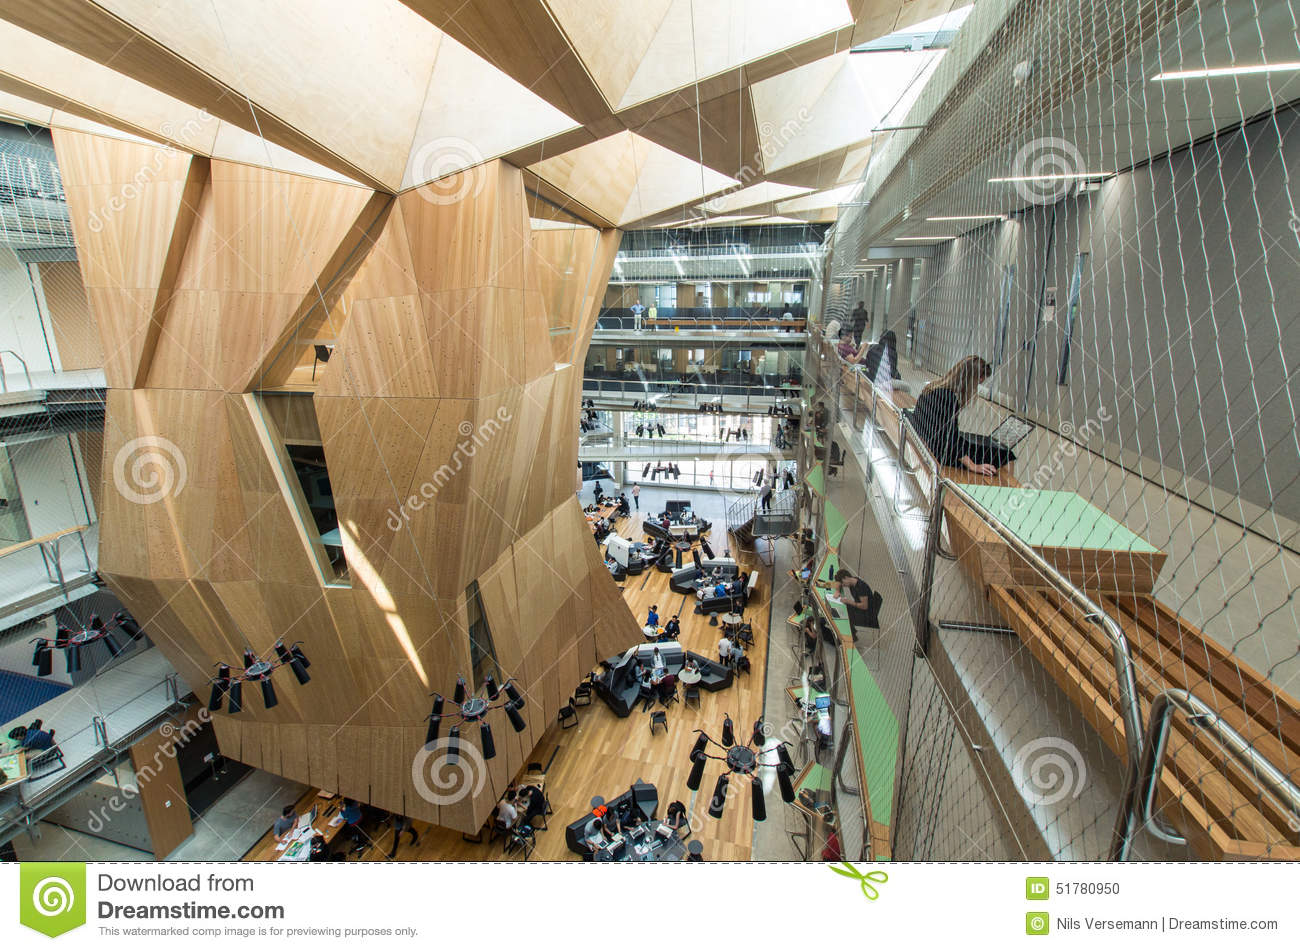 Melbourne school of design at the university of melbourne for Architecture by design